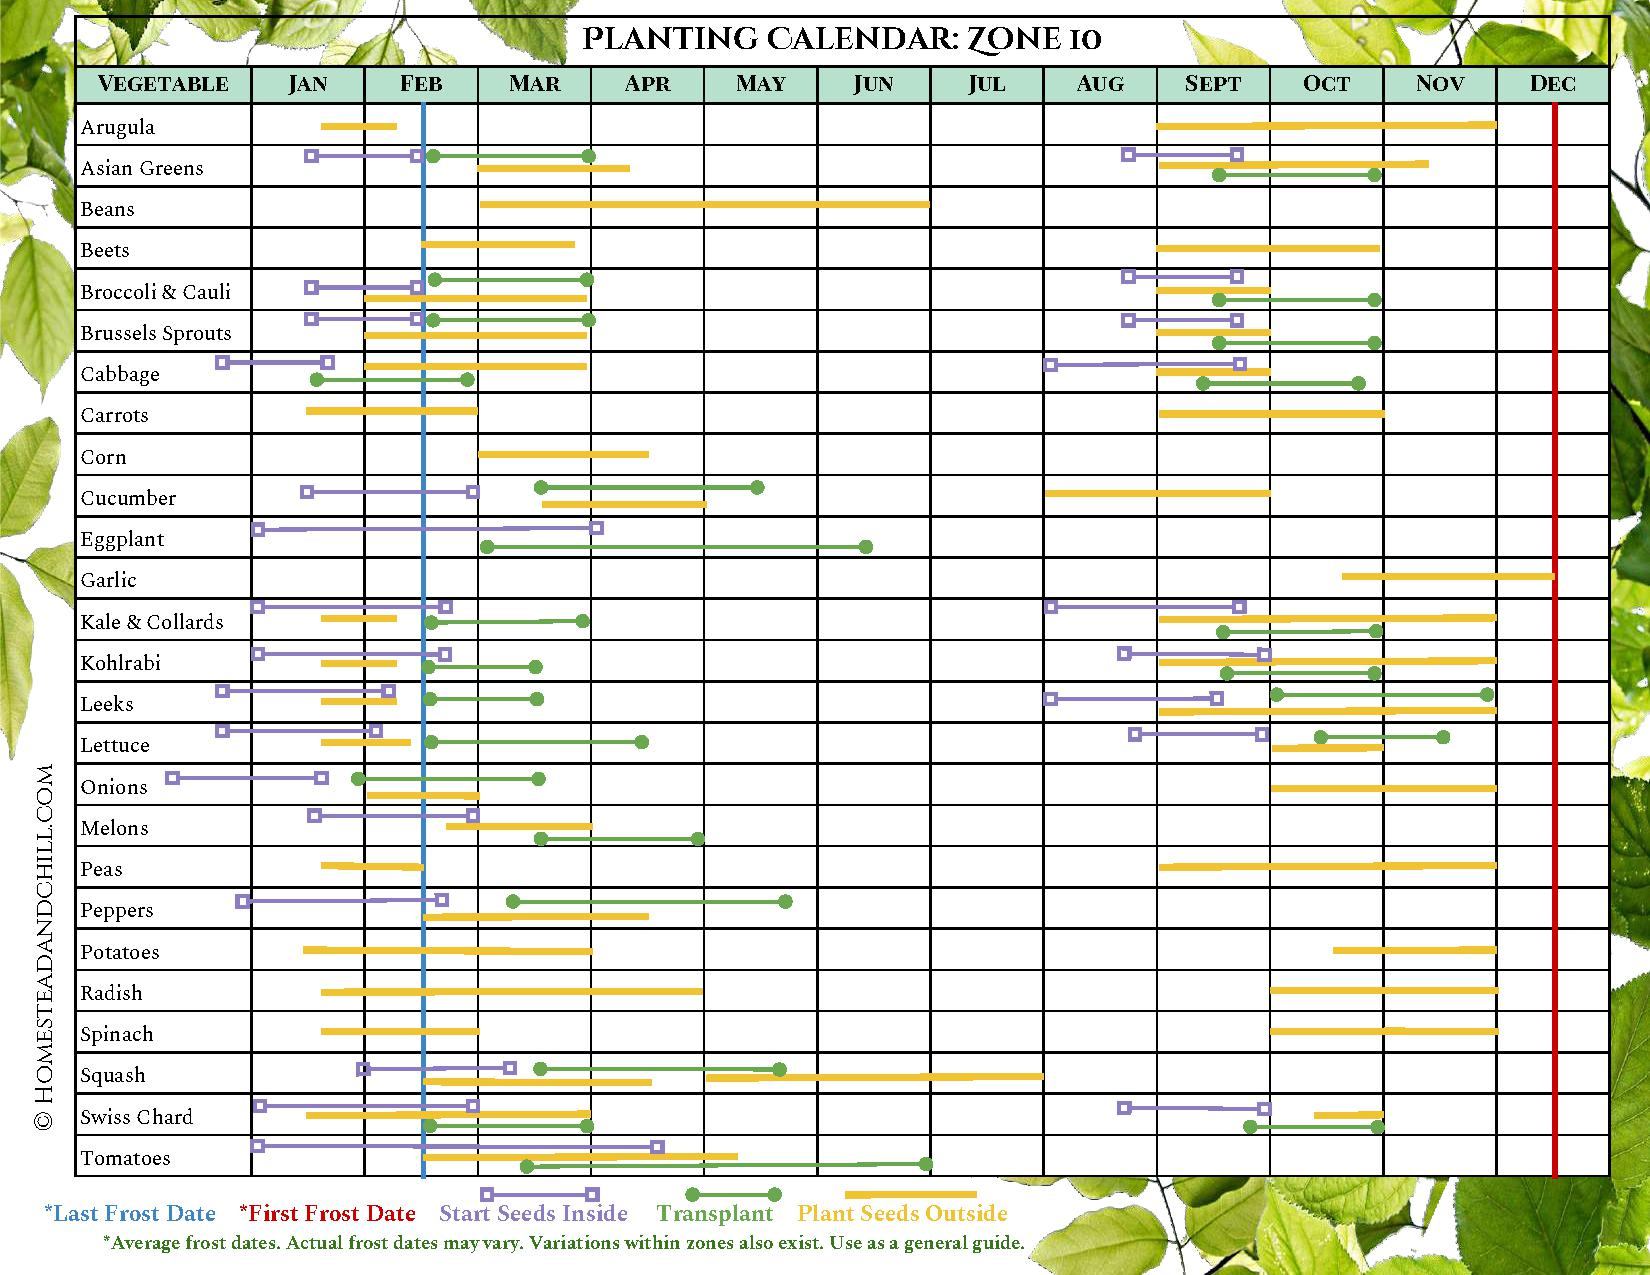 A planting calendar for Zone 10, it has many different vegetables lined up on the left side of the chart and all of the months of the year listed on the top of the chart. Each vegetable has different colored lines that correspond with when to start seeds inside, transplant outdoors, and plant seeds outside, along with corresponding last frost date and first frost date where applicable. The lines start left to right, showing what months you should do each particular task depending on the season and where you live.